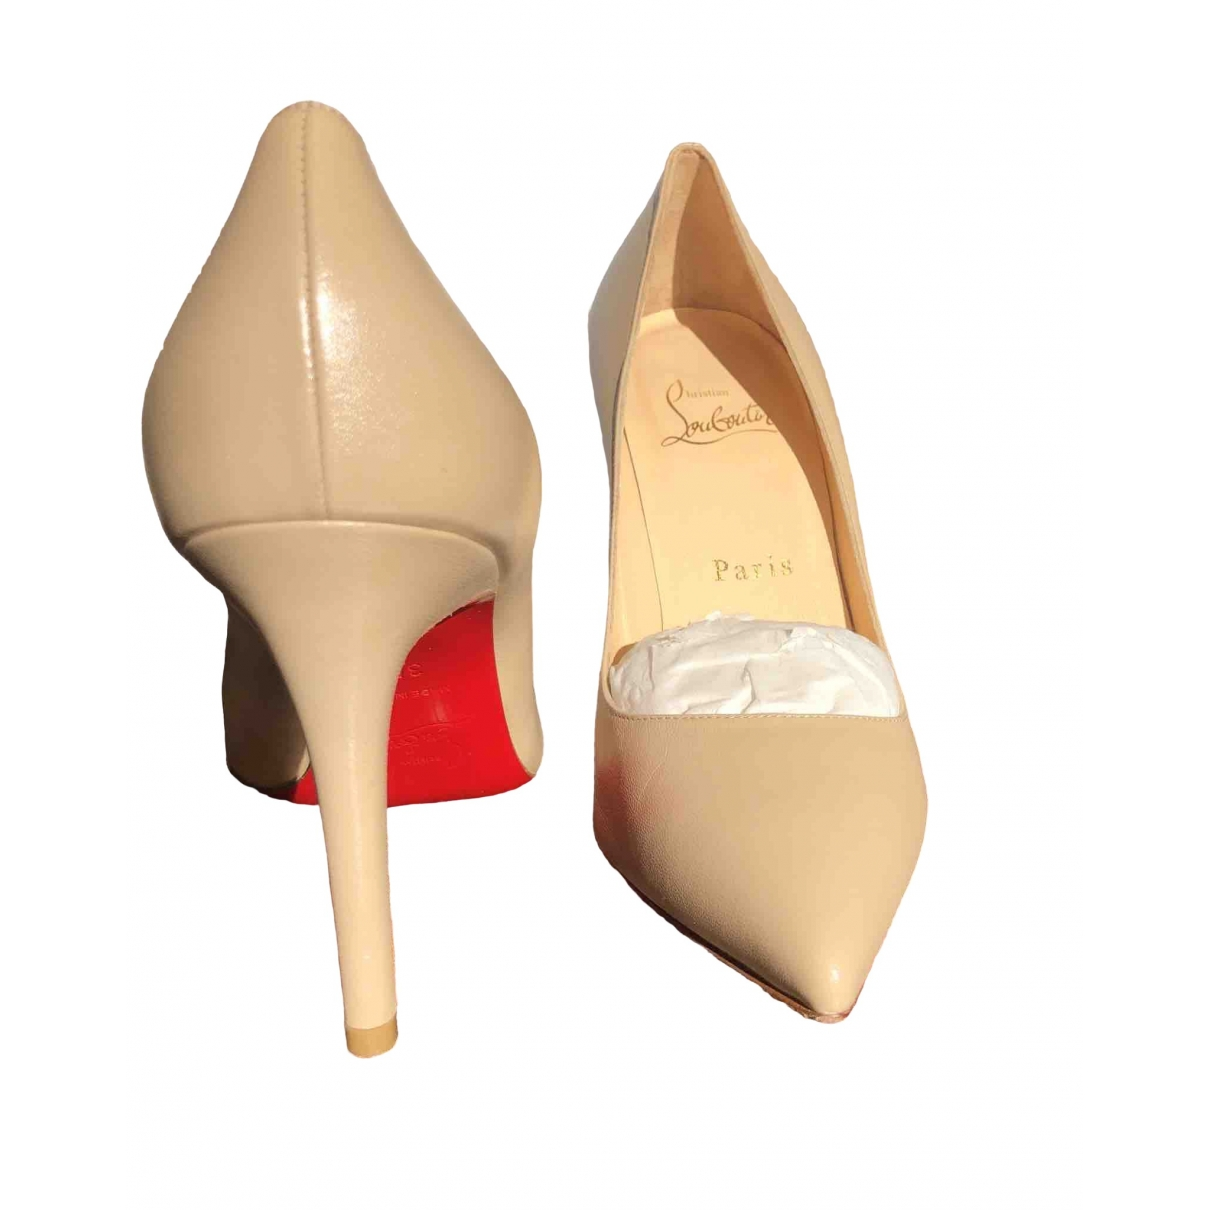 Christian Louboutin Pigalle Beige Leather Heels for Women 35.5 EU